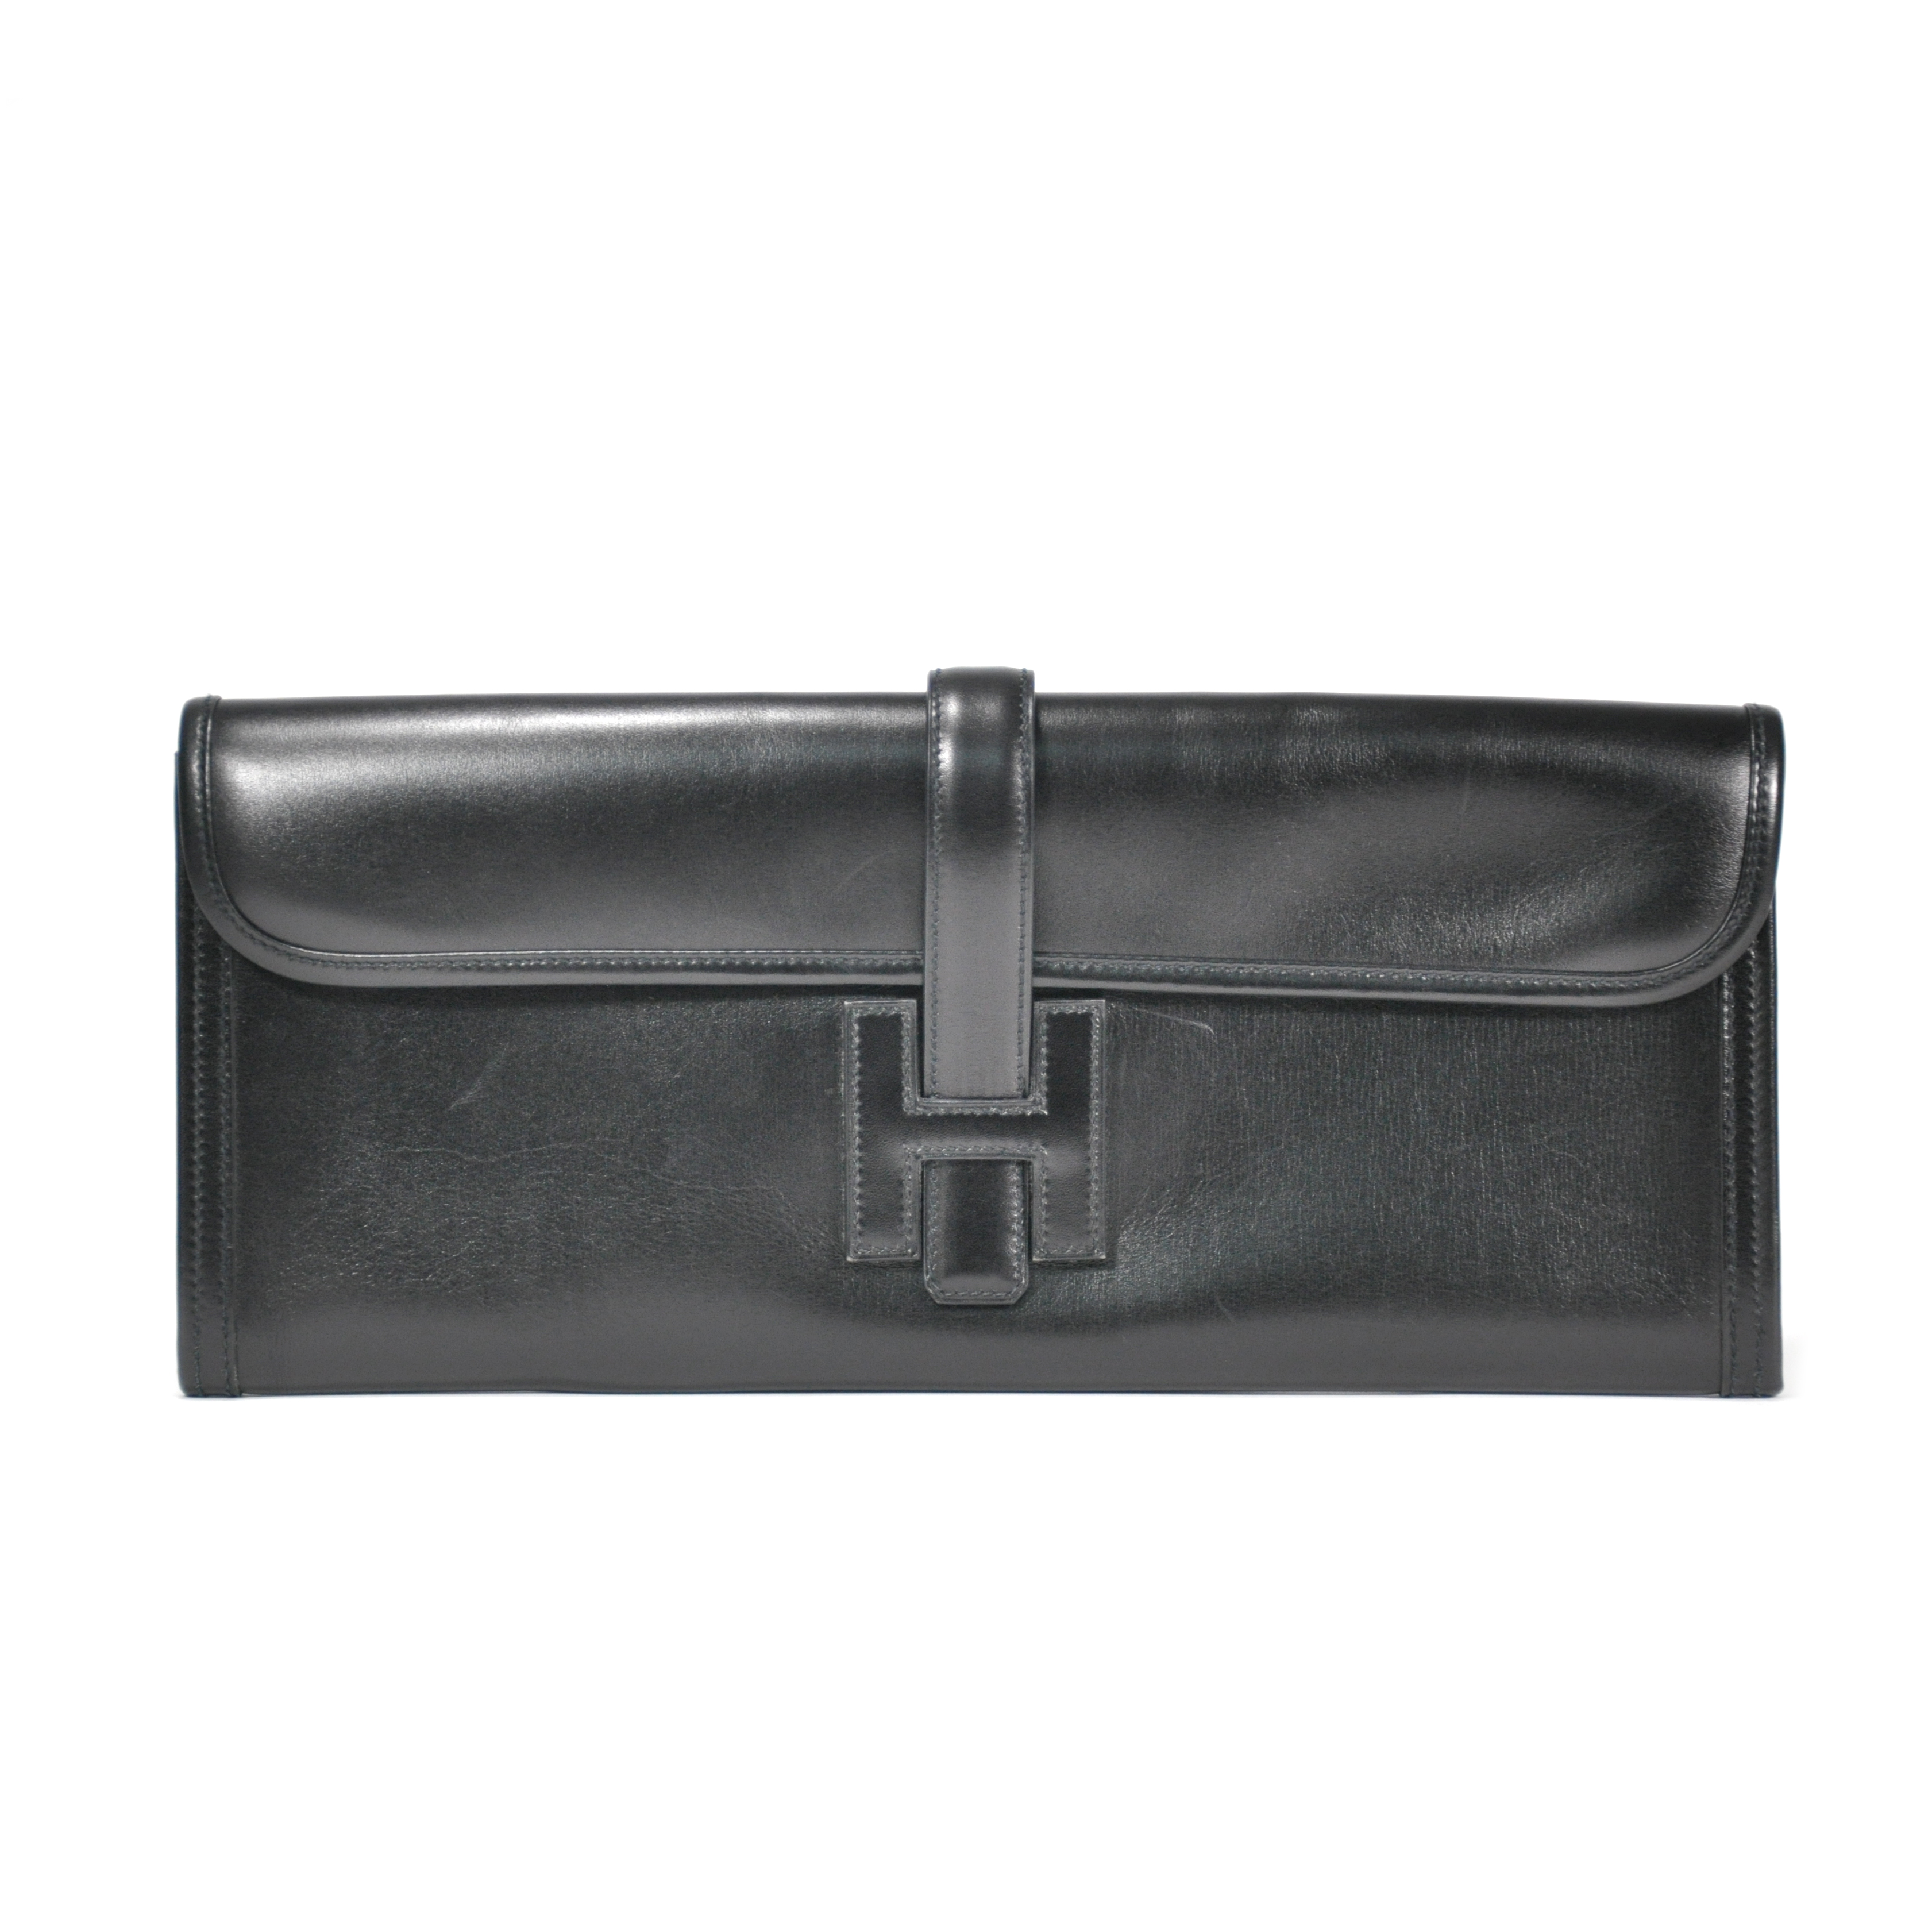 bed027172652e6 Authentic Second Hand Hermès Jige Elan Long Clutch (PSS-051-00021) | THE  FIFTH COLLECTION